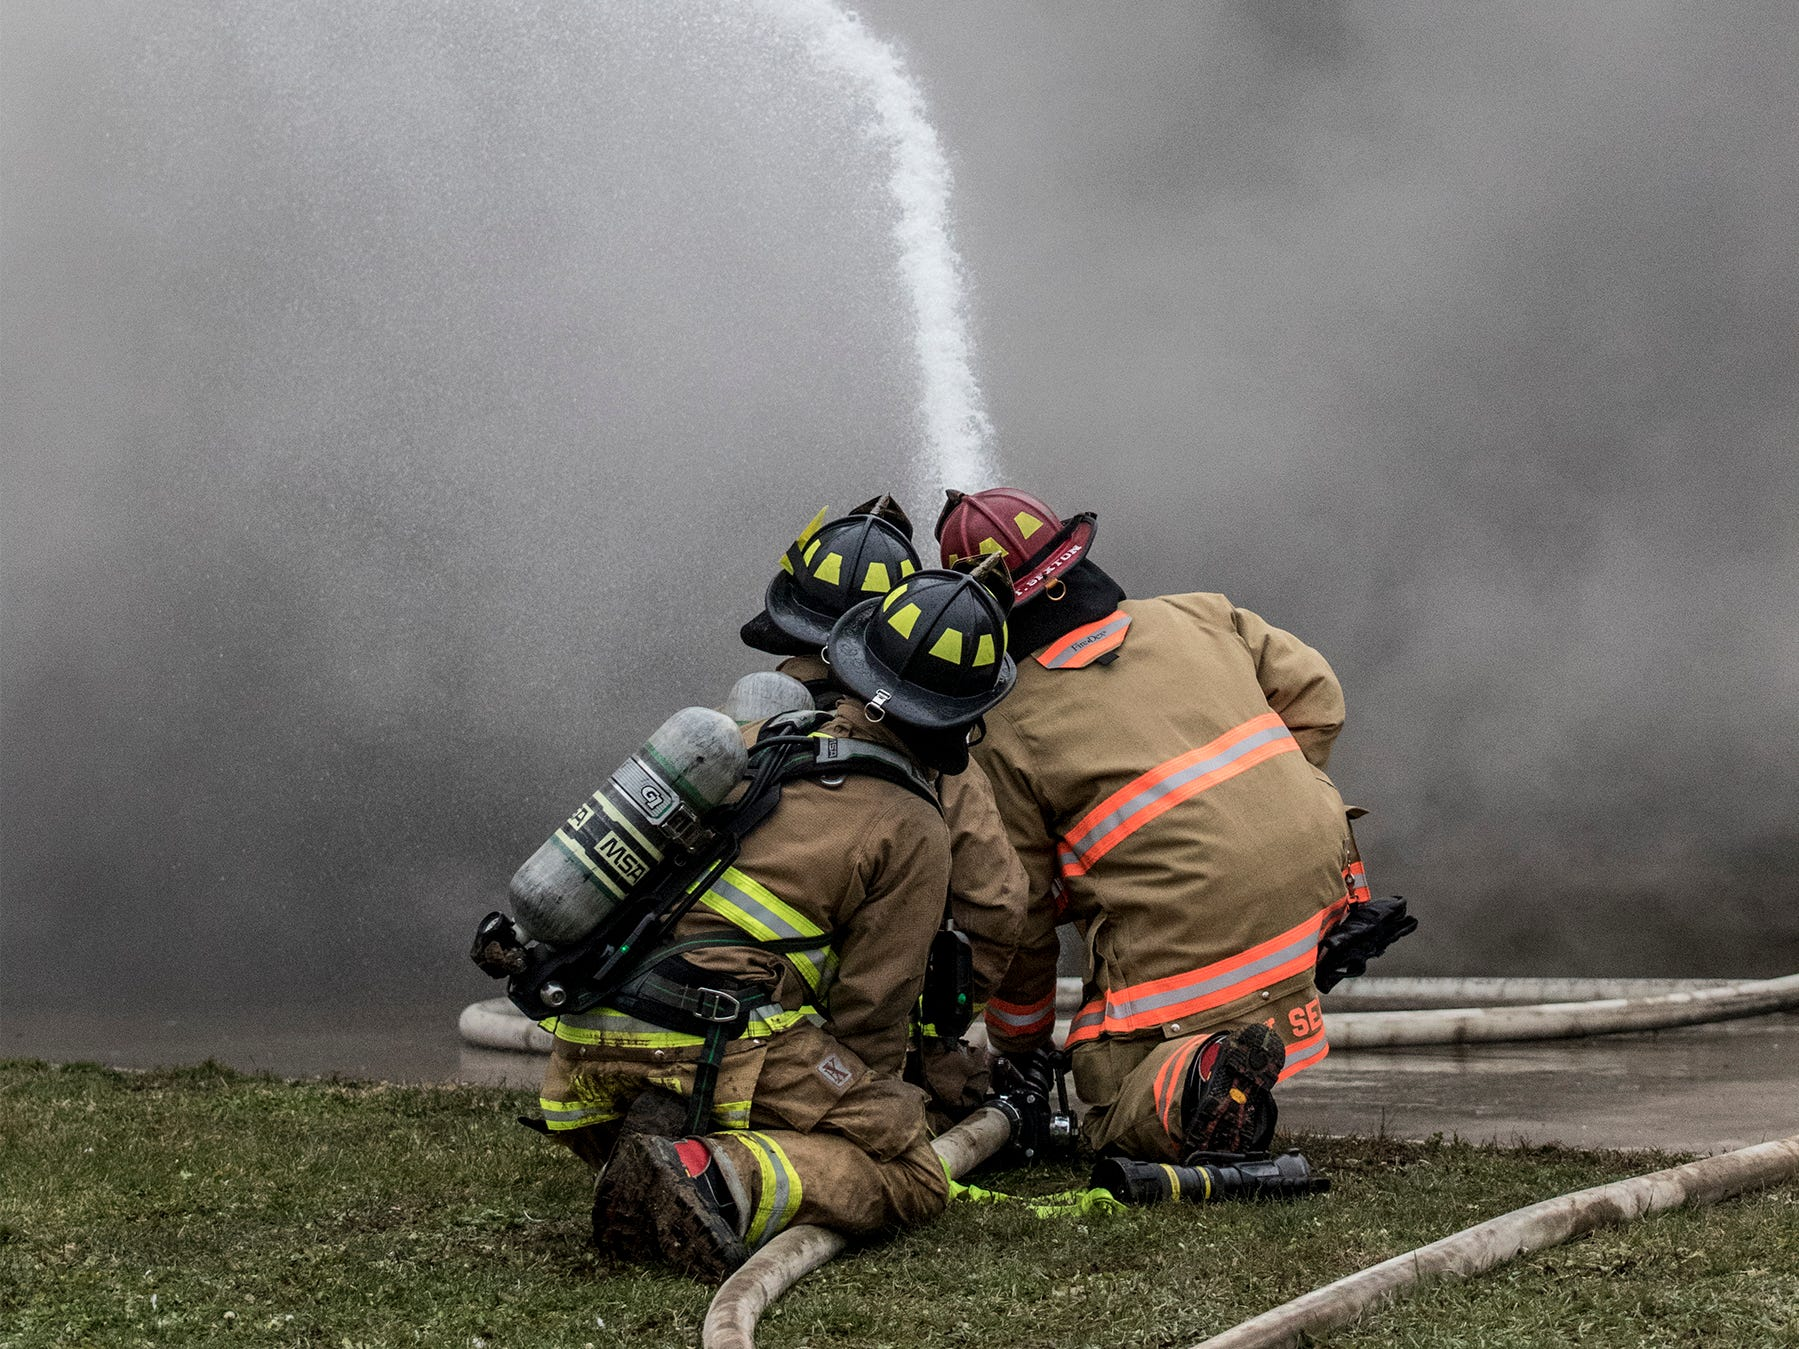 A fire started in one of the chicken barns at Trillium Farms in Croton. The fire was contained to one building, which is a total loss. Fire crews from multiple surrounding townships responded to the fire. No workers were injured in the fire, one hen escaped. The cause is still being determined.